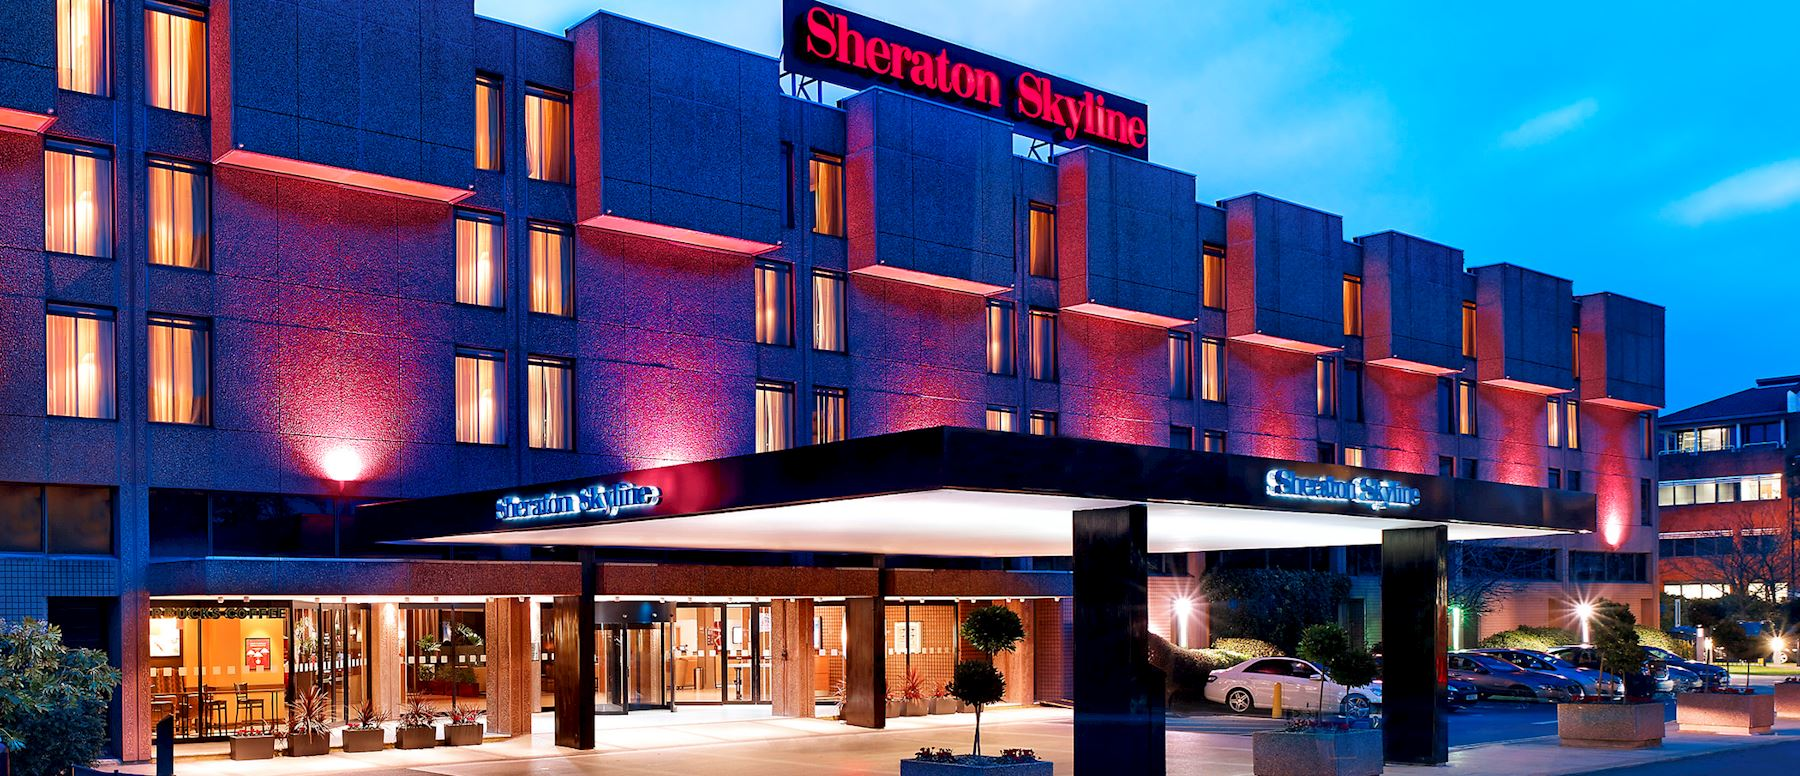 Sheraton Skyline Hotel, London Heathrow